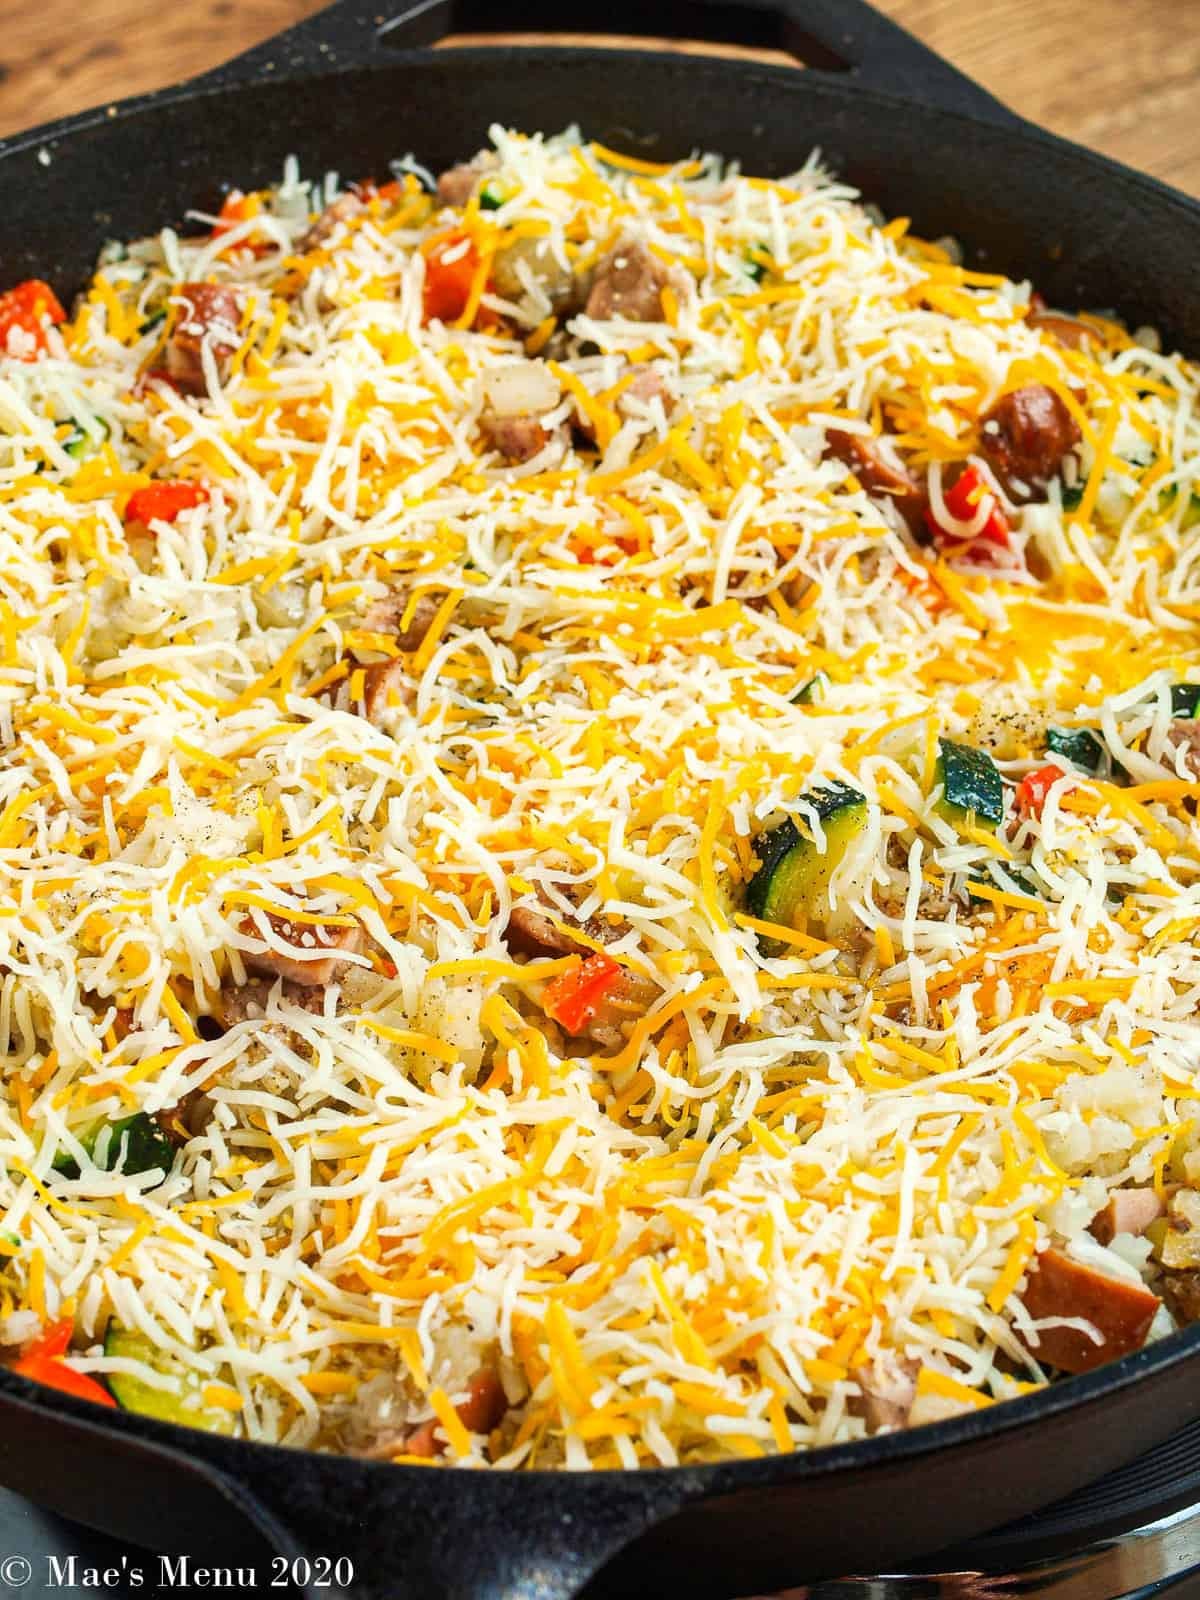 A side shot of the breakfast skillet with fresh shredded cheese on top.